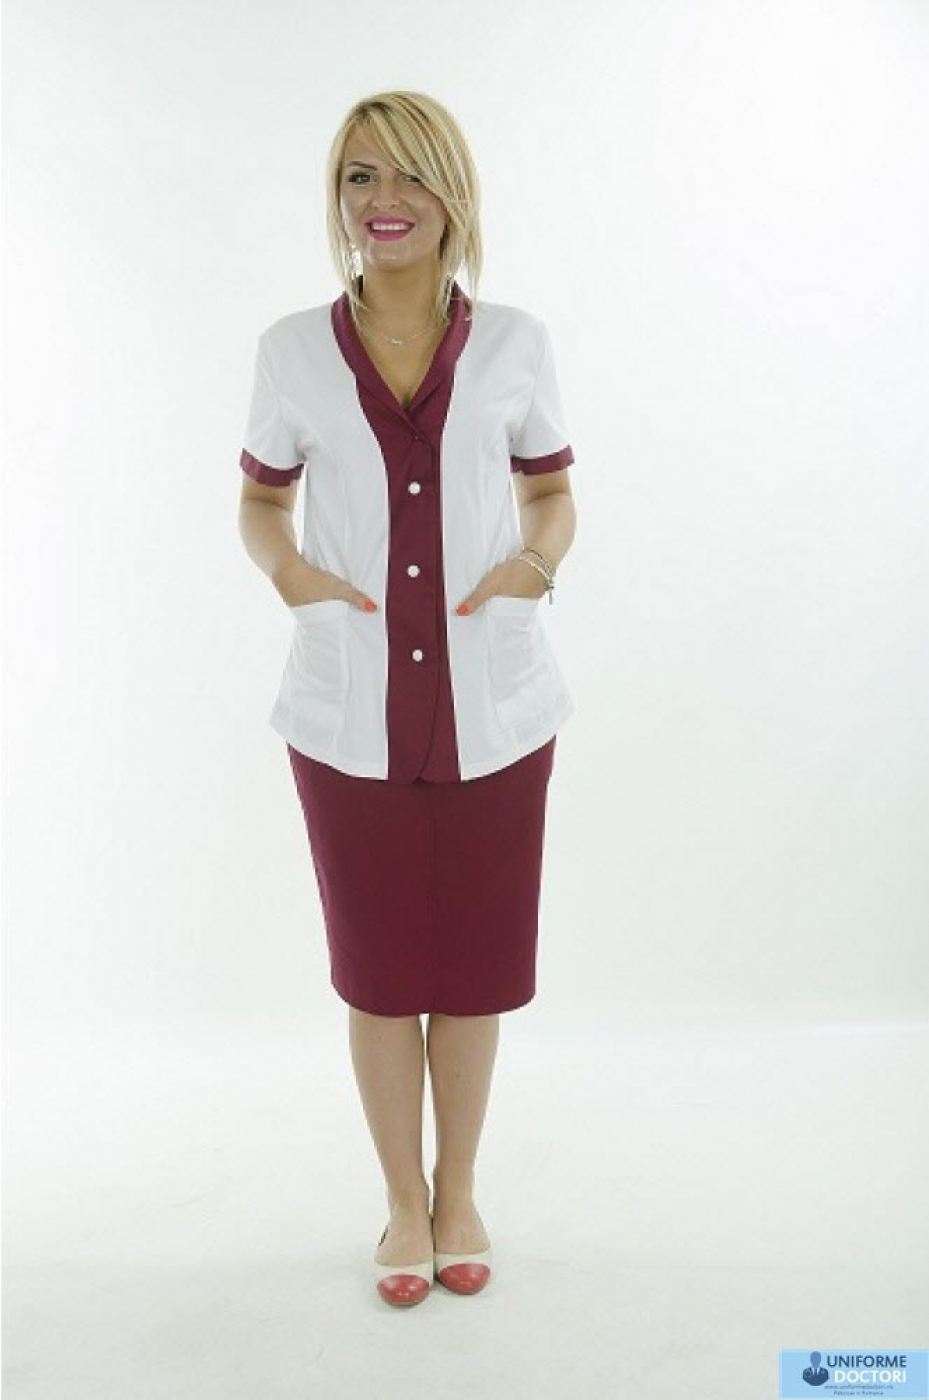 Uniforme medicale - Halat medical cu guler sal, maneca scurta, model bicolor